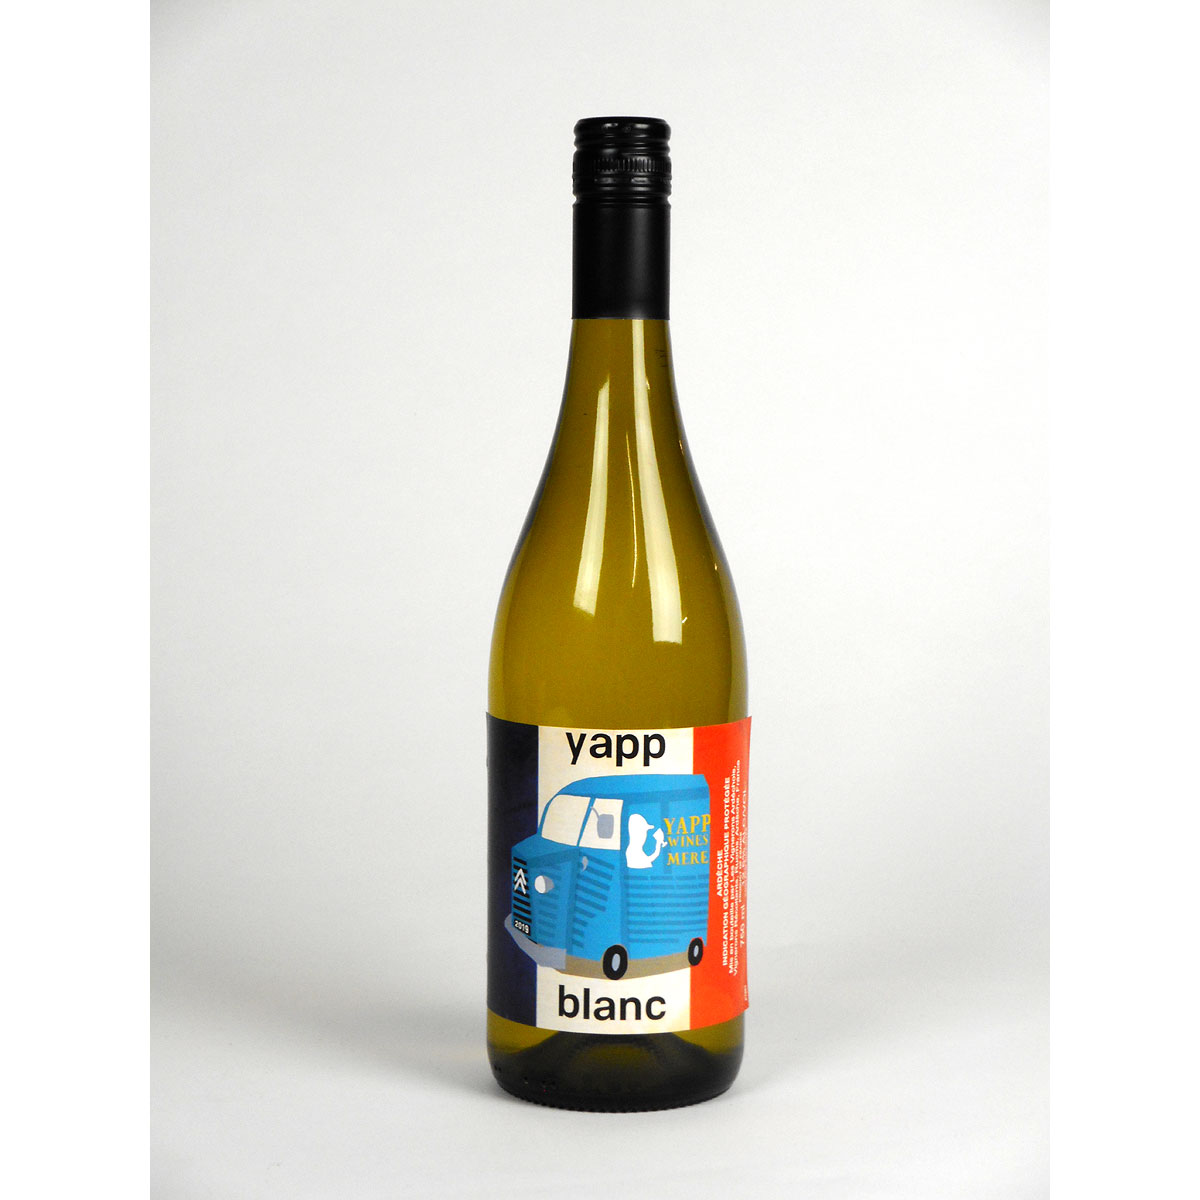 Yapp Blanc 2019 - Bottle